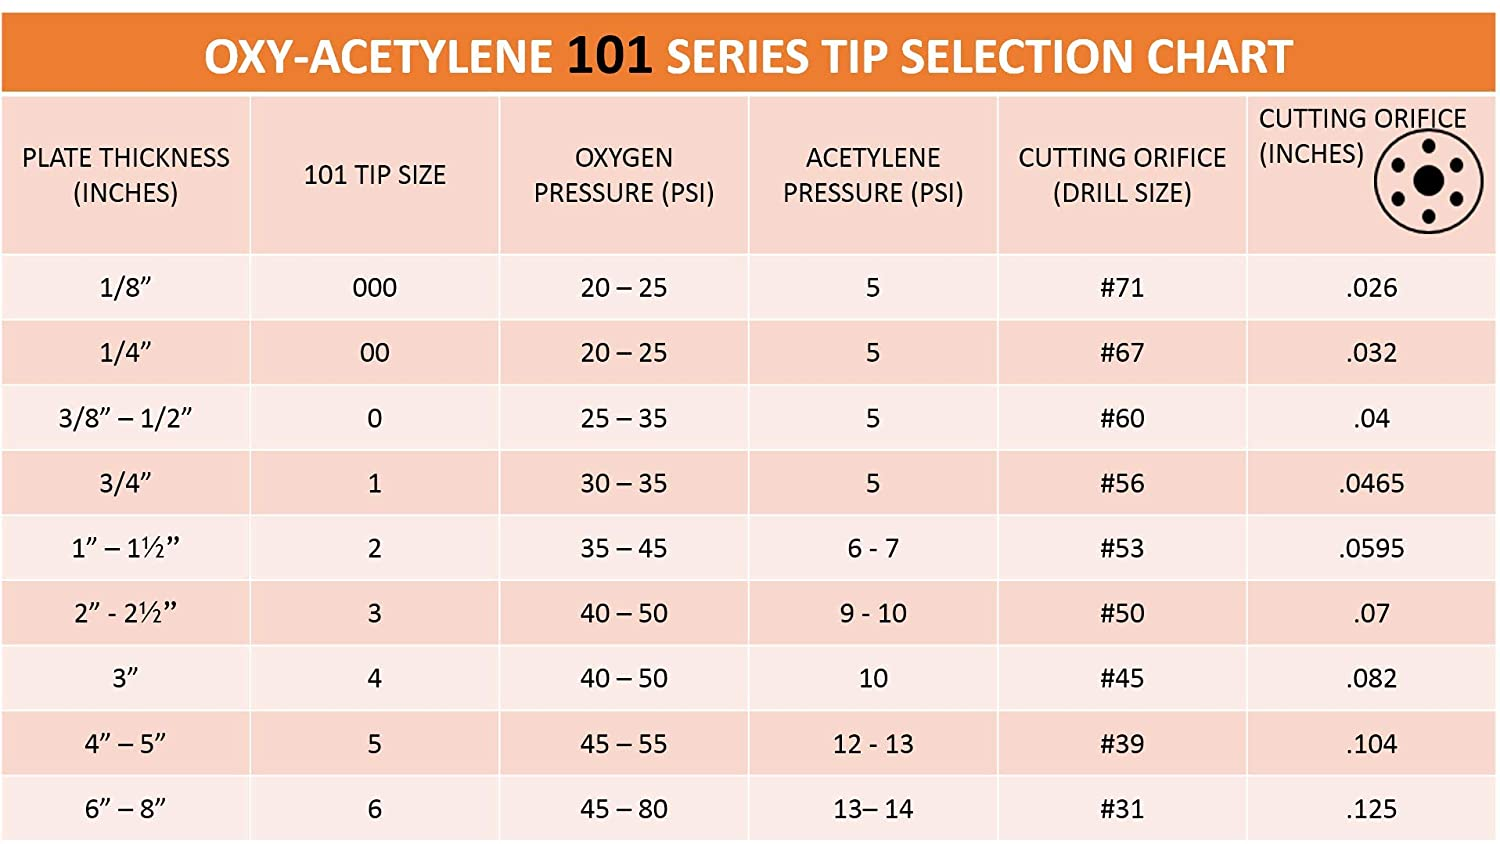 SMALL TIP SERIES 3-101-1 Acetylene Cutting Tip Size: 1 S/ÜA Replacement for Victor